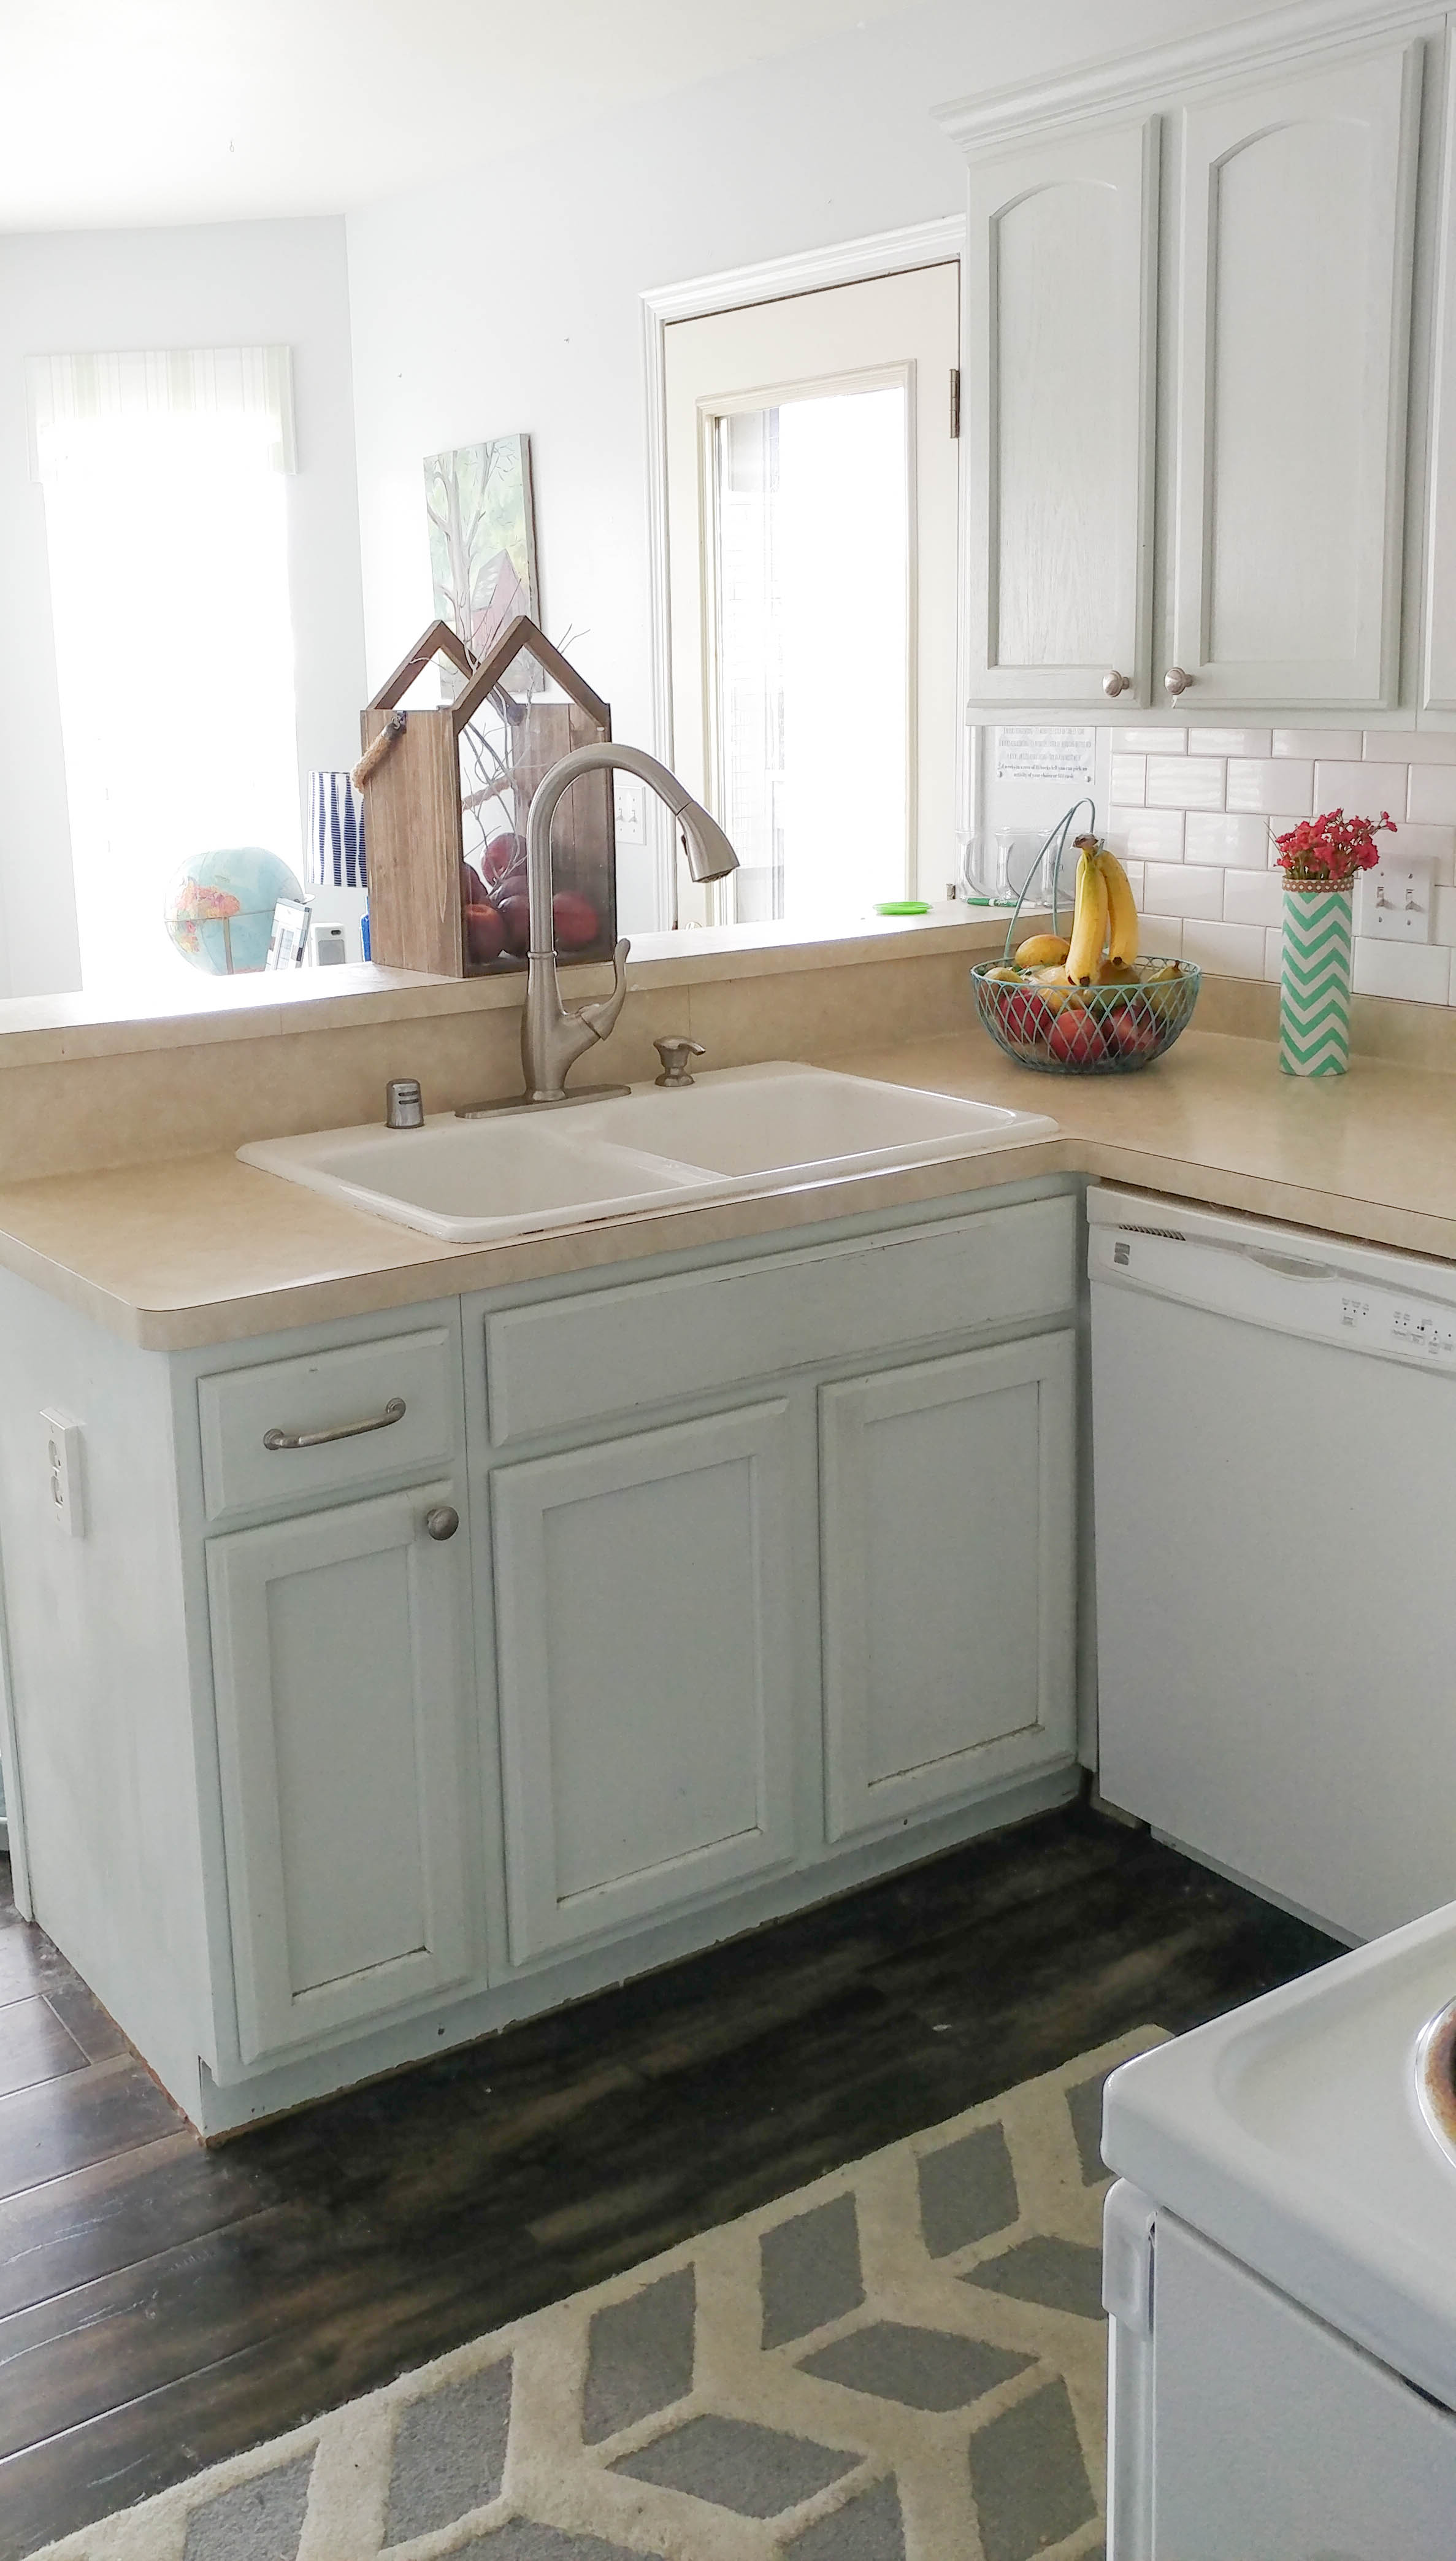 For A Kitchen Bathroom And Kitchen Renovations You Can Afford O Our House Now A Home